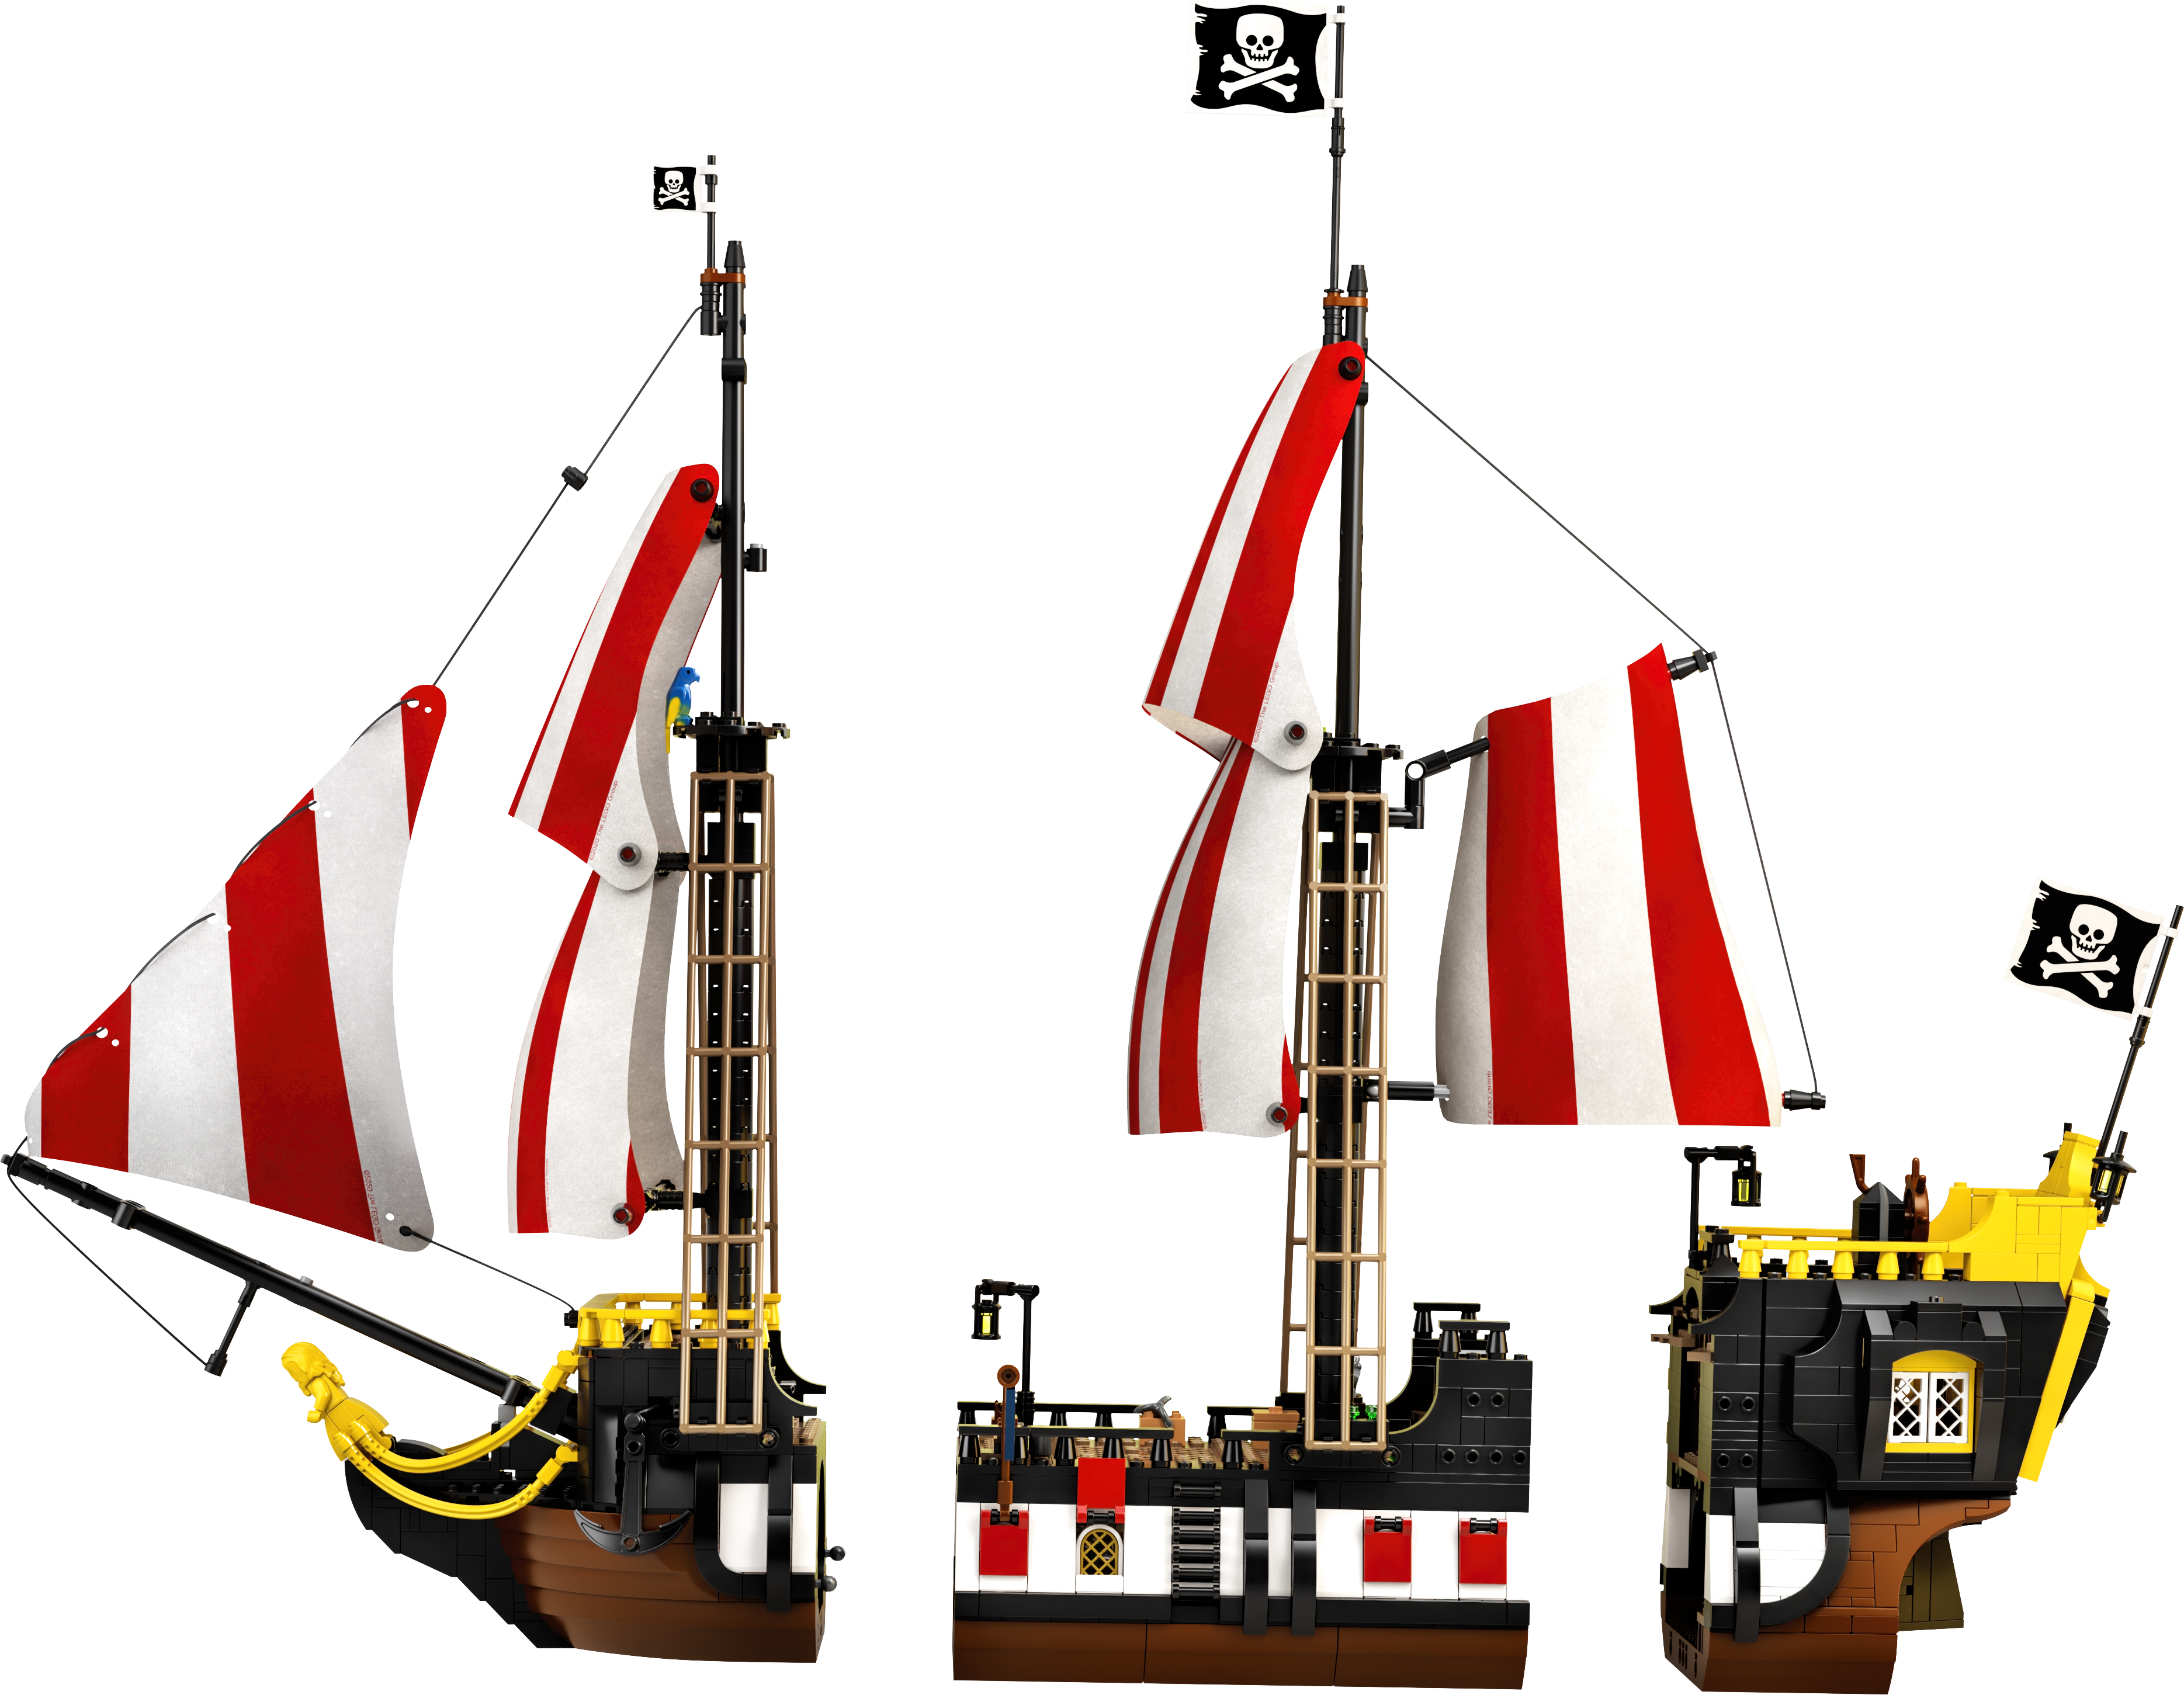 Lego Ideas Priates of Barracuda Bay